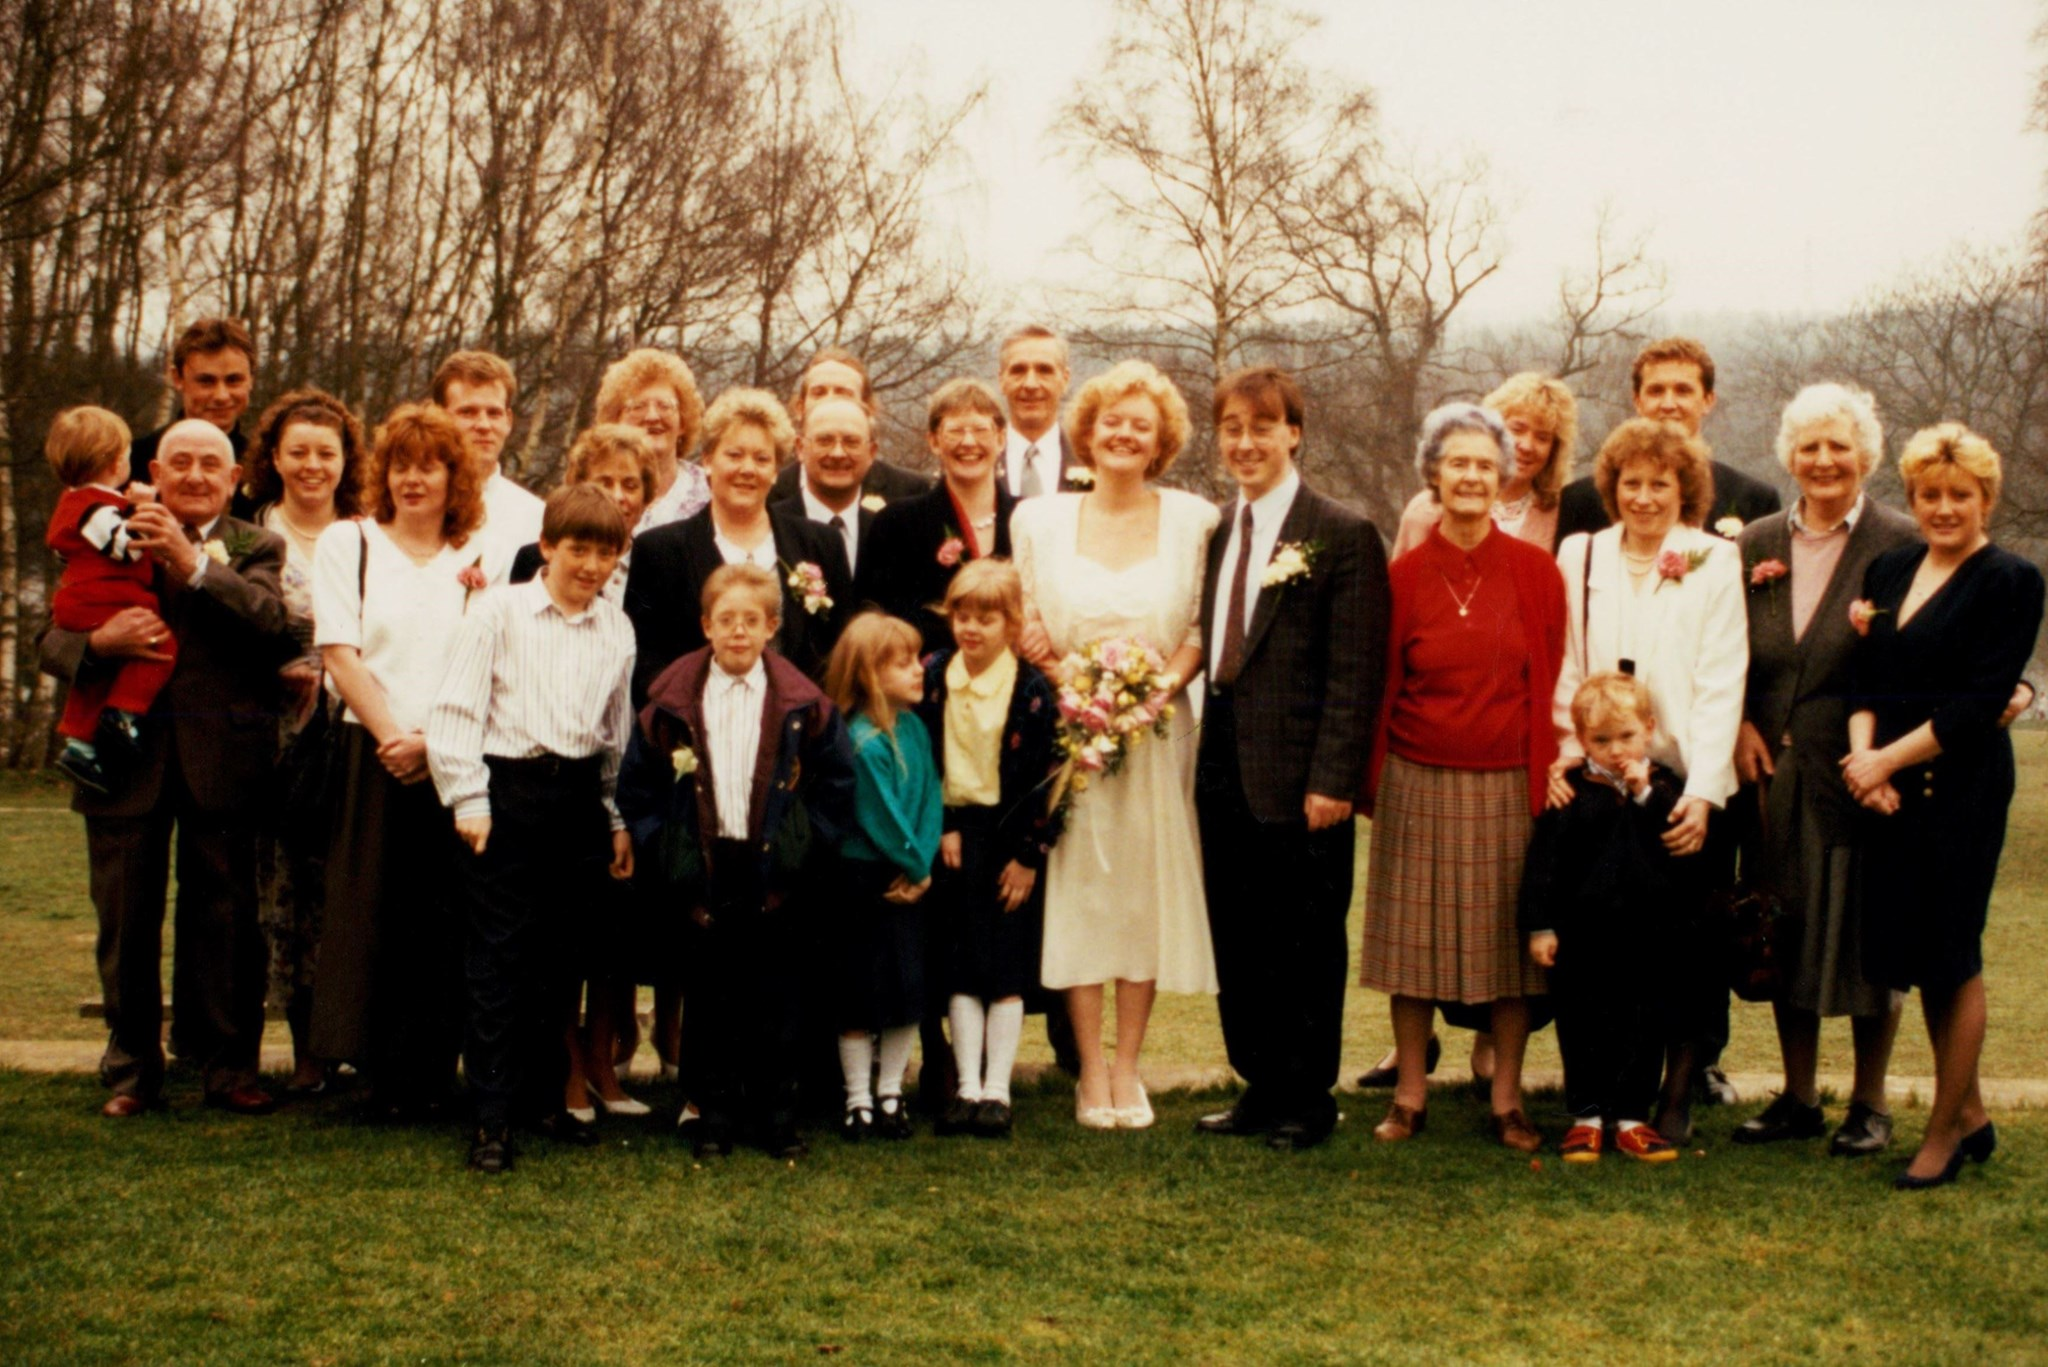 Some of the family - can you name them all? Can you spot Dad?